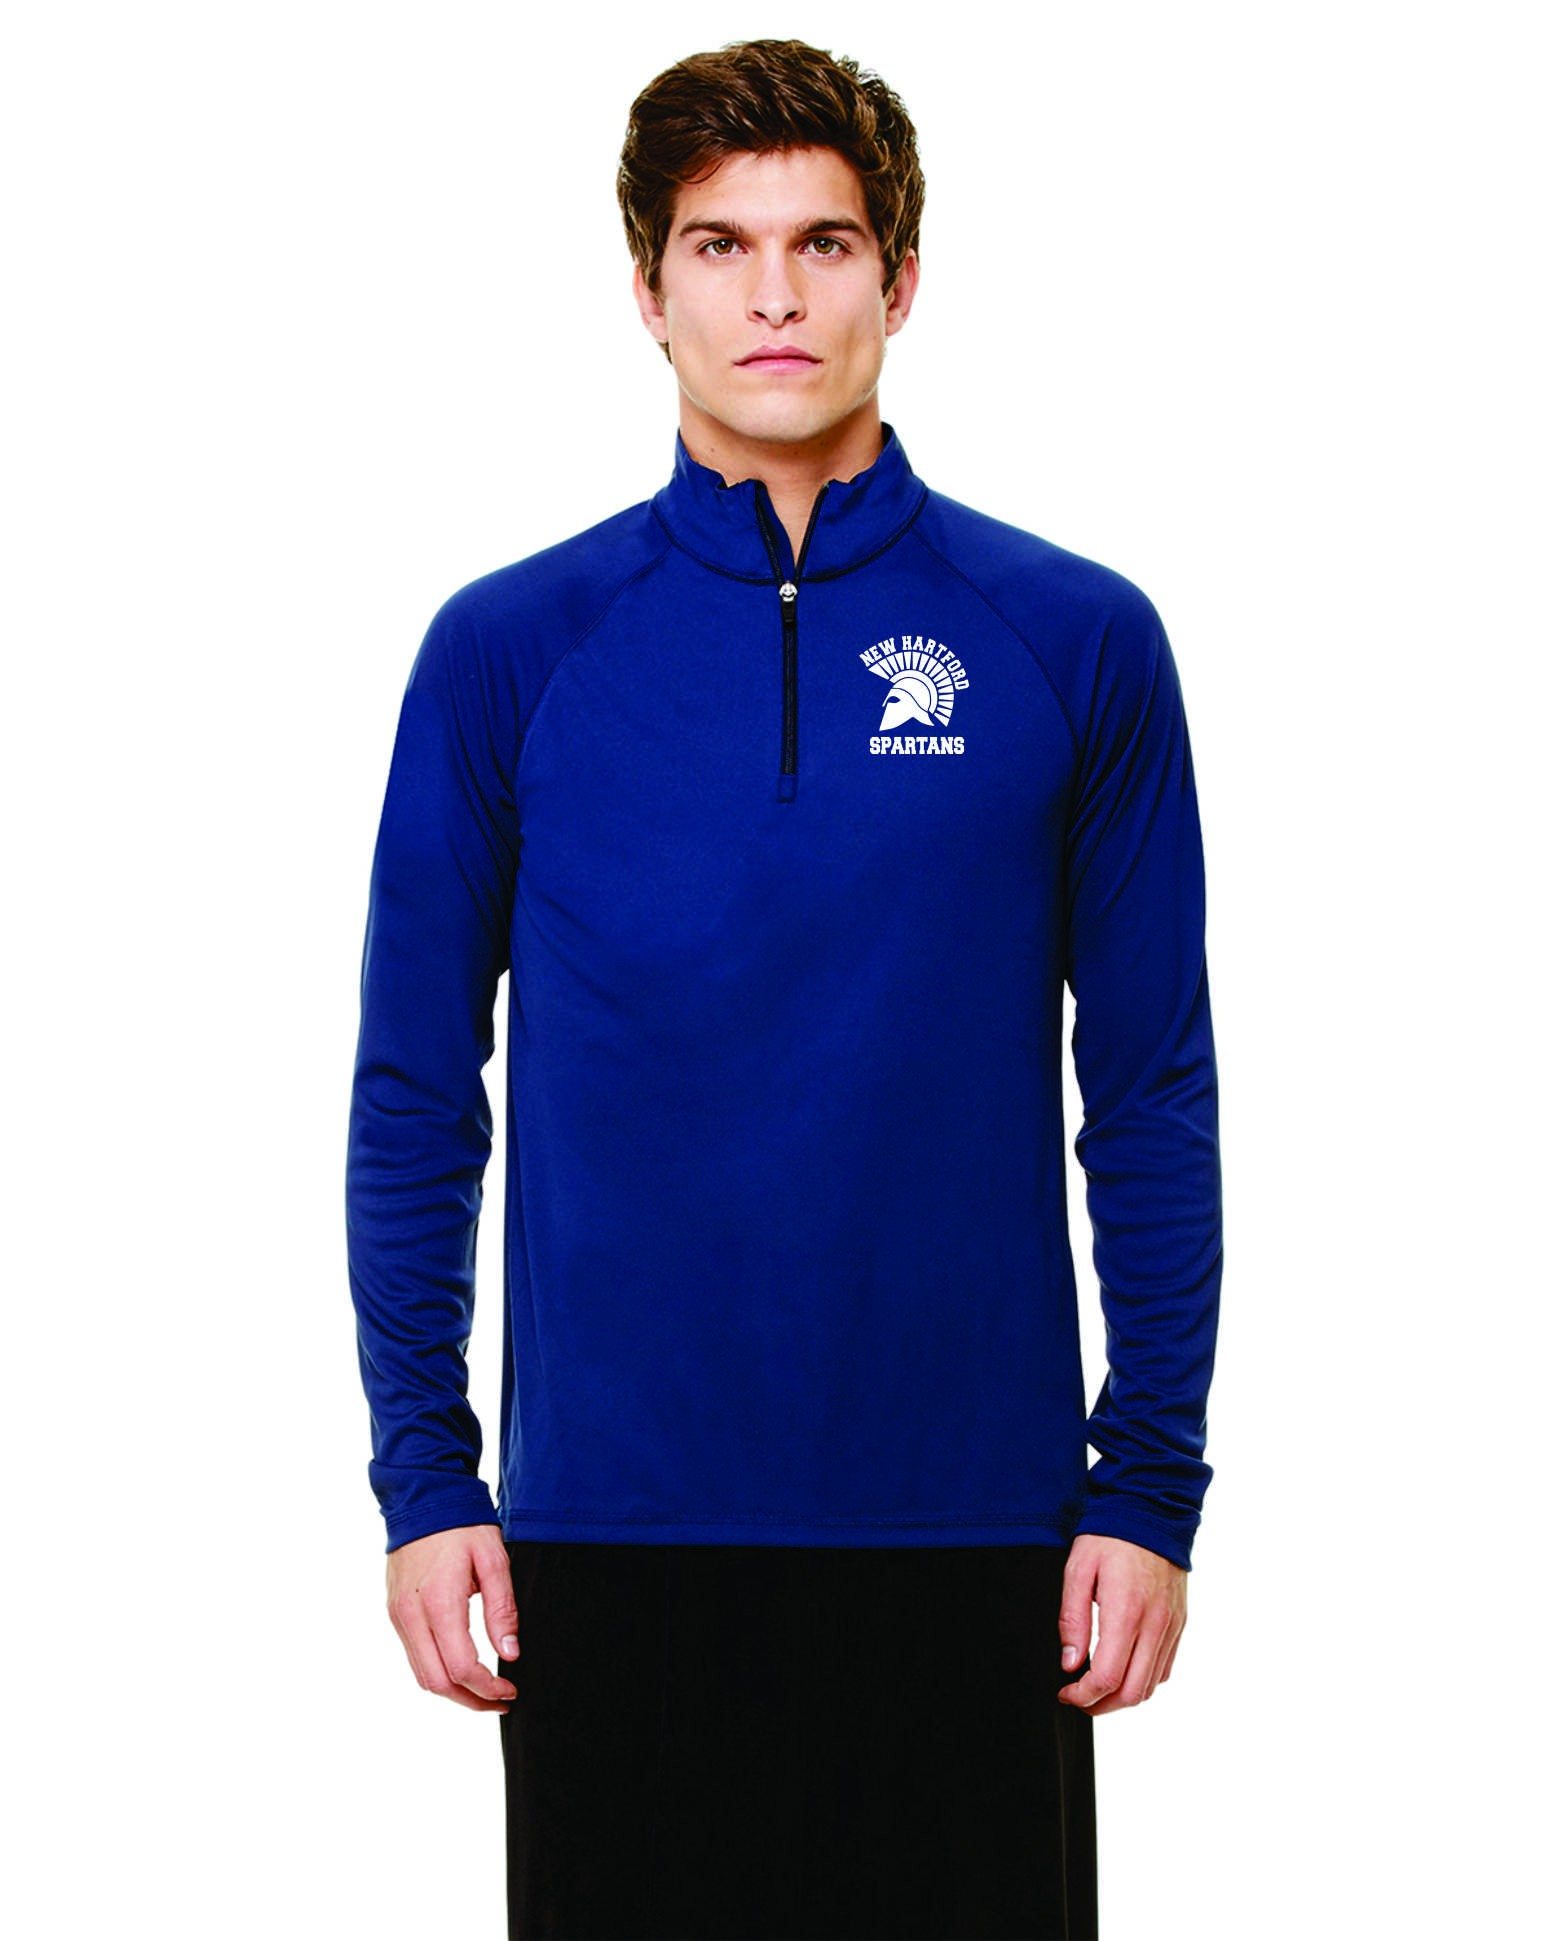 New Hartford Spartans Quarter Zip Lightweight Pullover